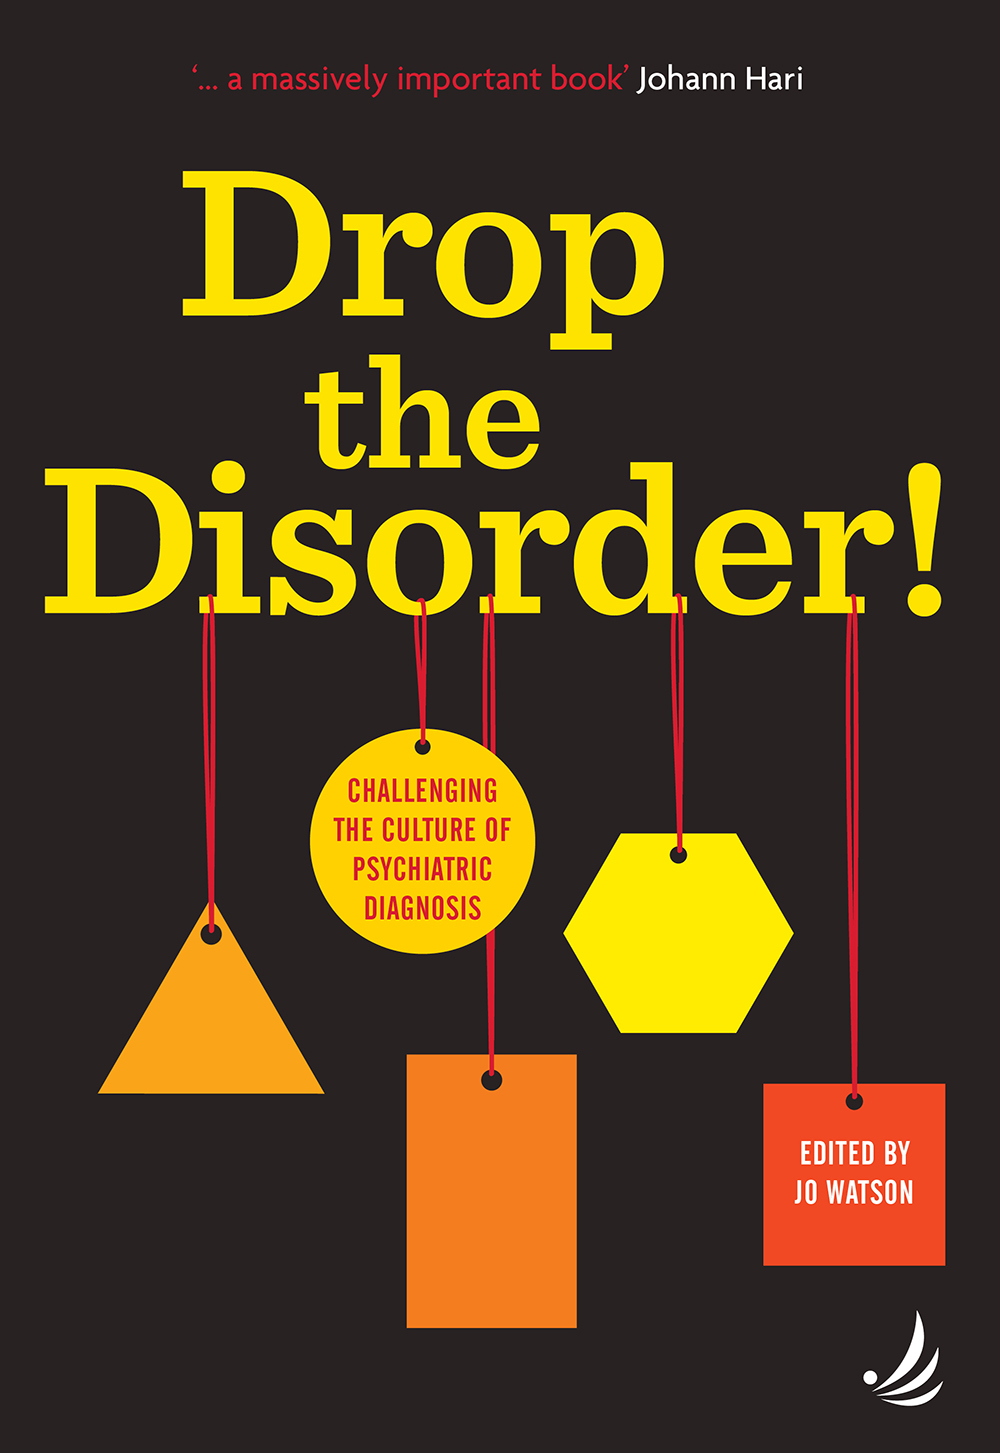 """A Disorder for Everyone!"" - Challenging the culture of psychiatric diagnosis - Ipswich"